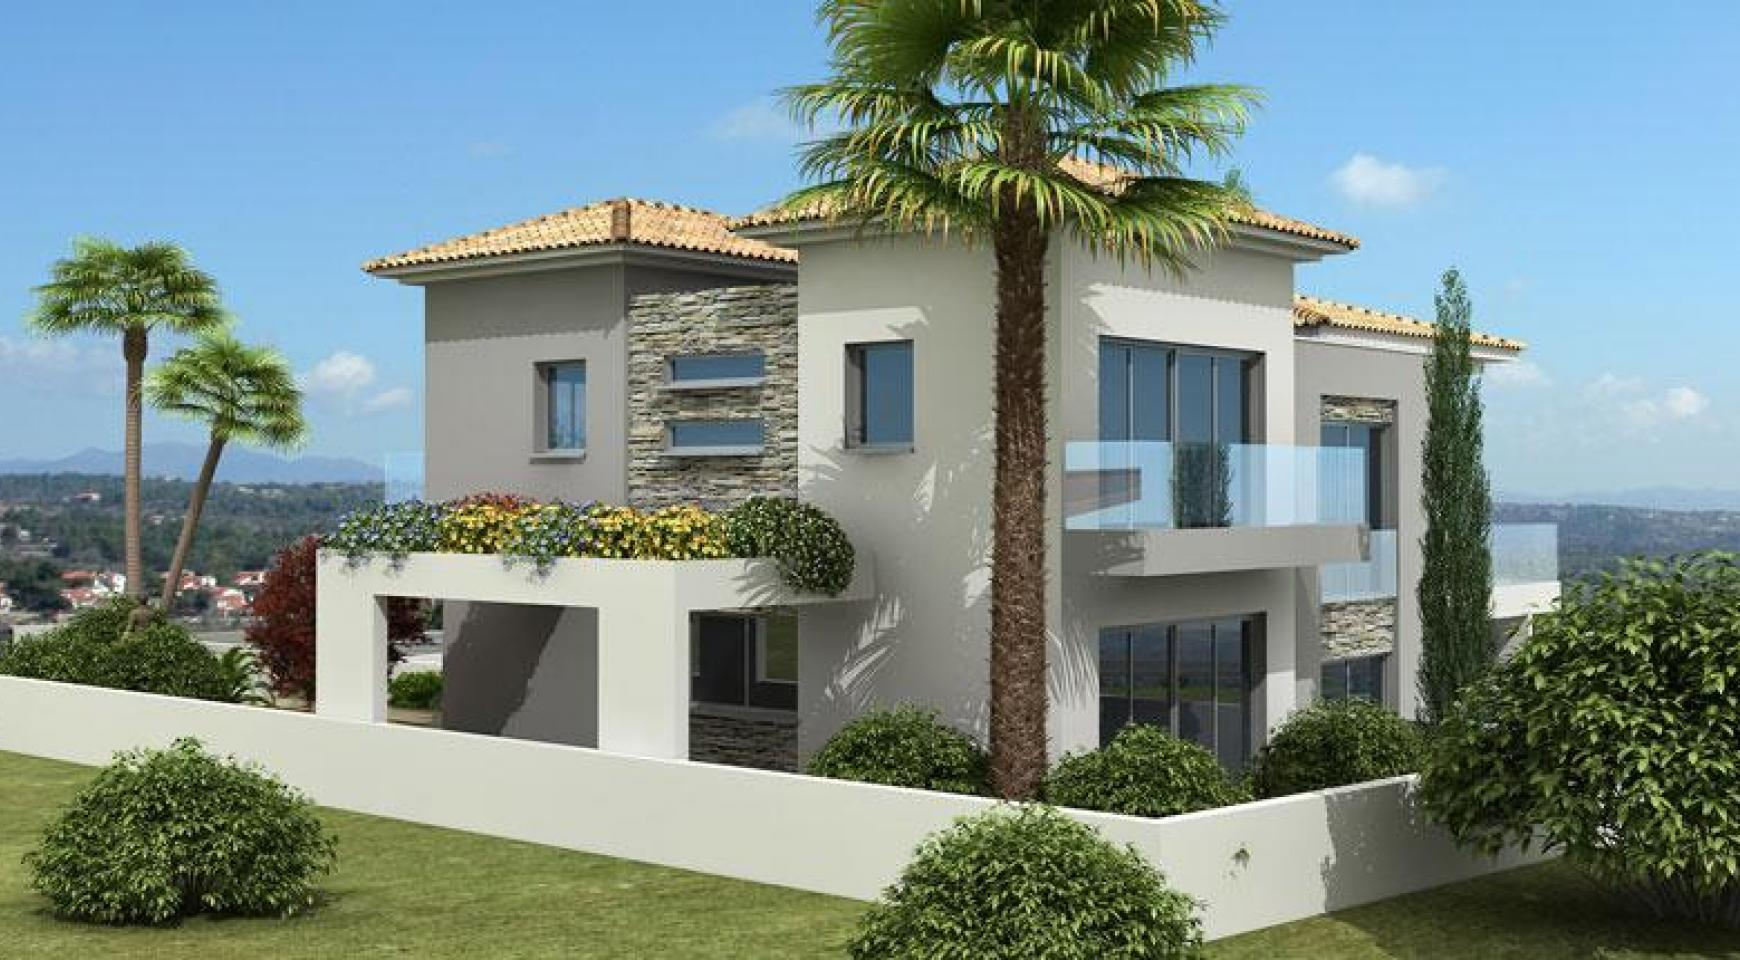 New 2 Bedroom Maisonette within a Contemporary Development in Moni - 2